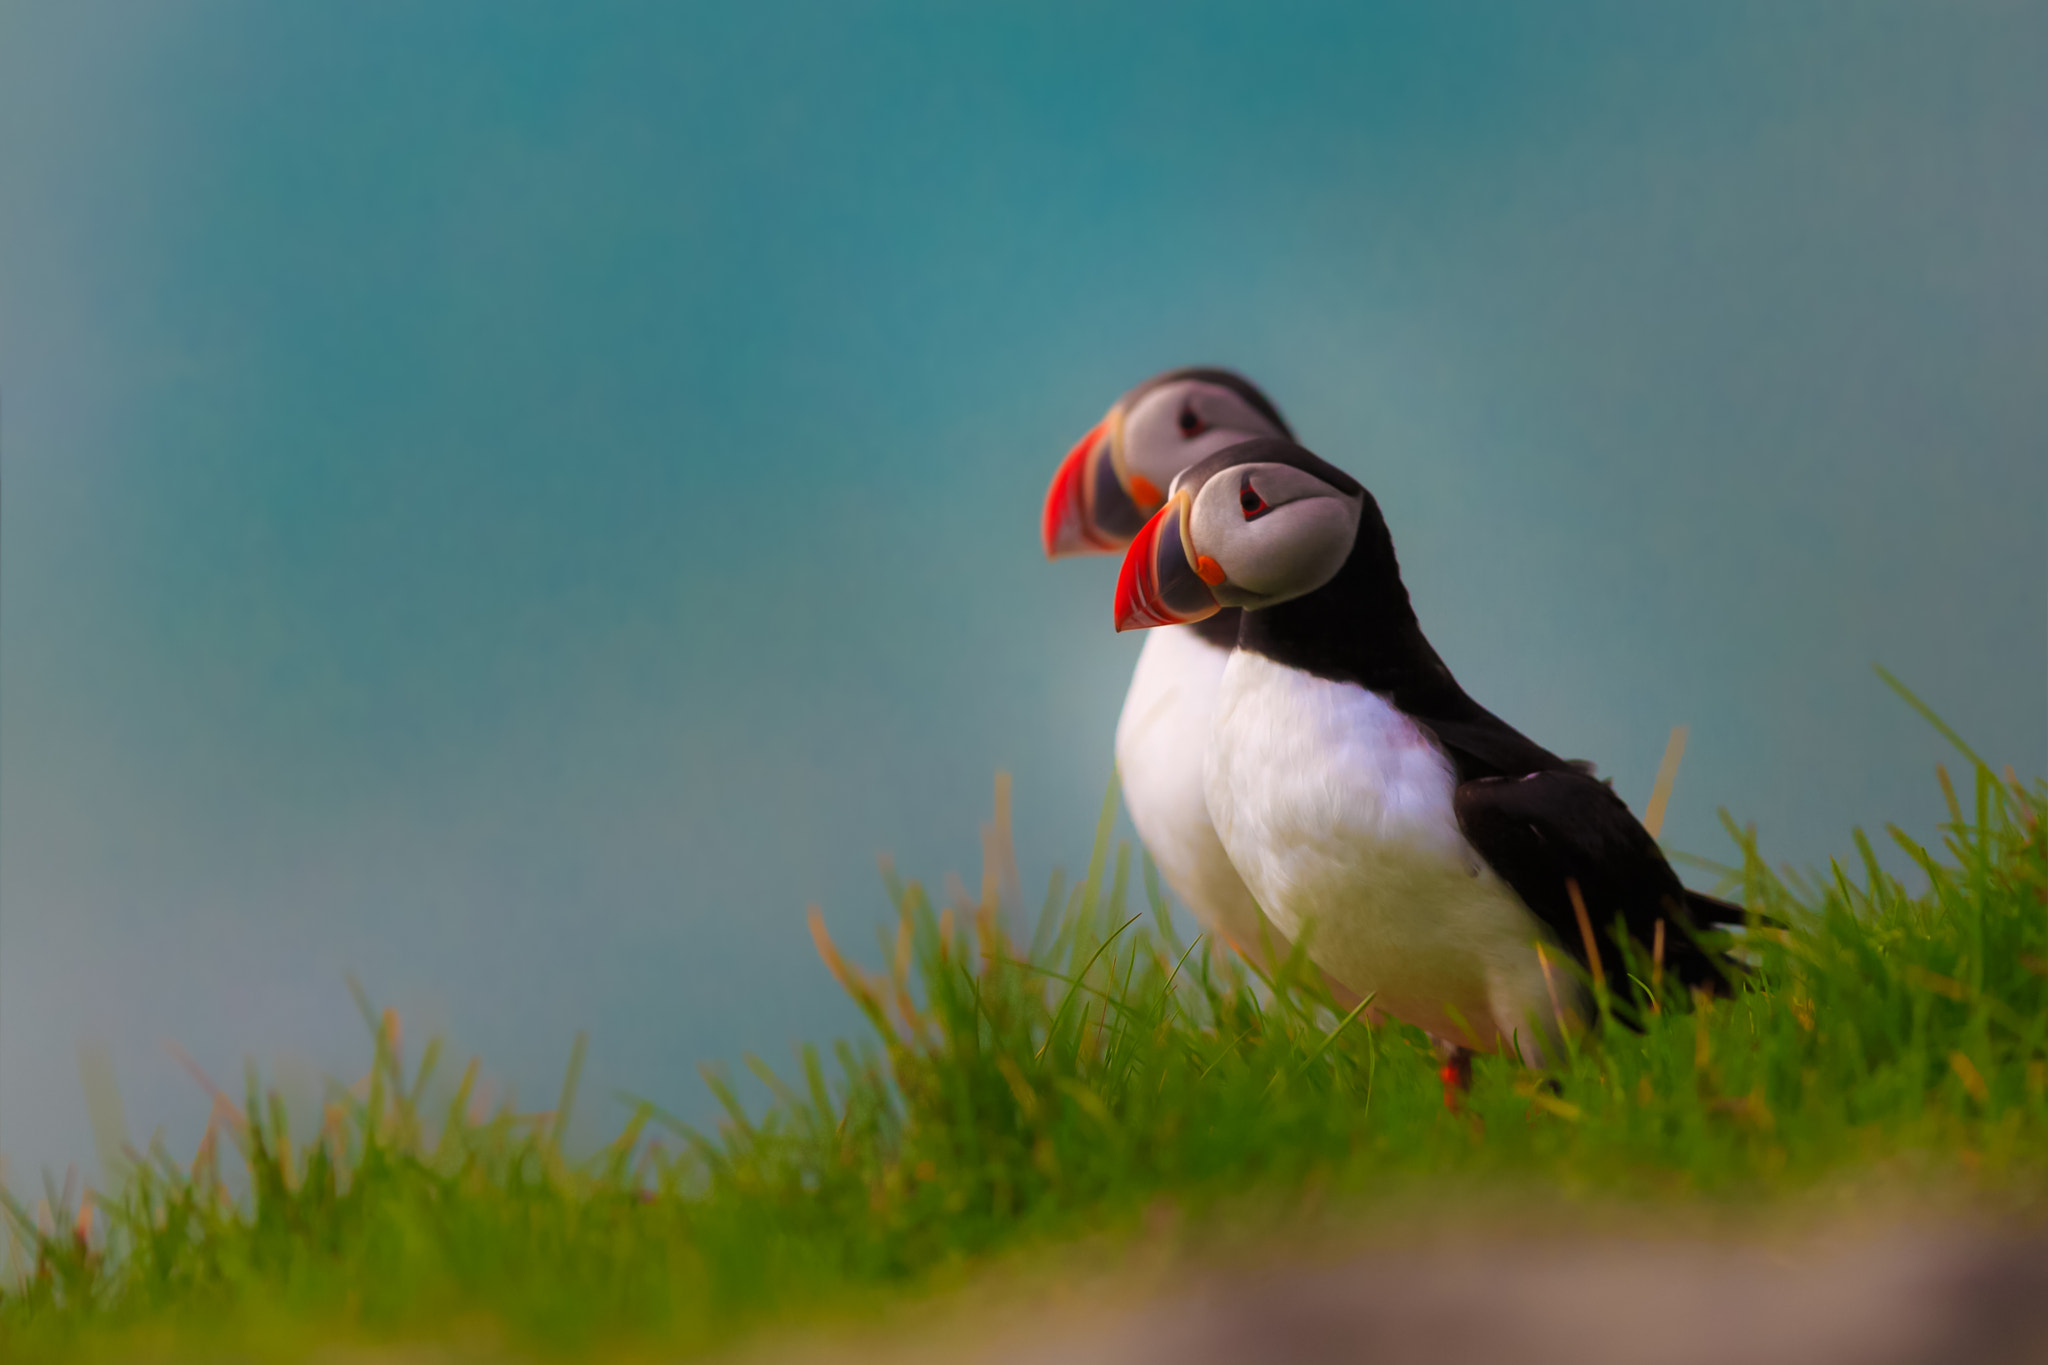 Photograph Two Puffins by Philipp Wedel on 500px